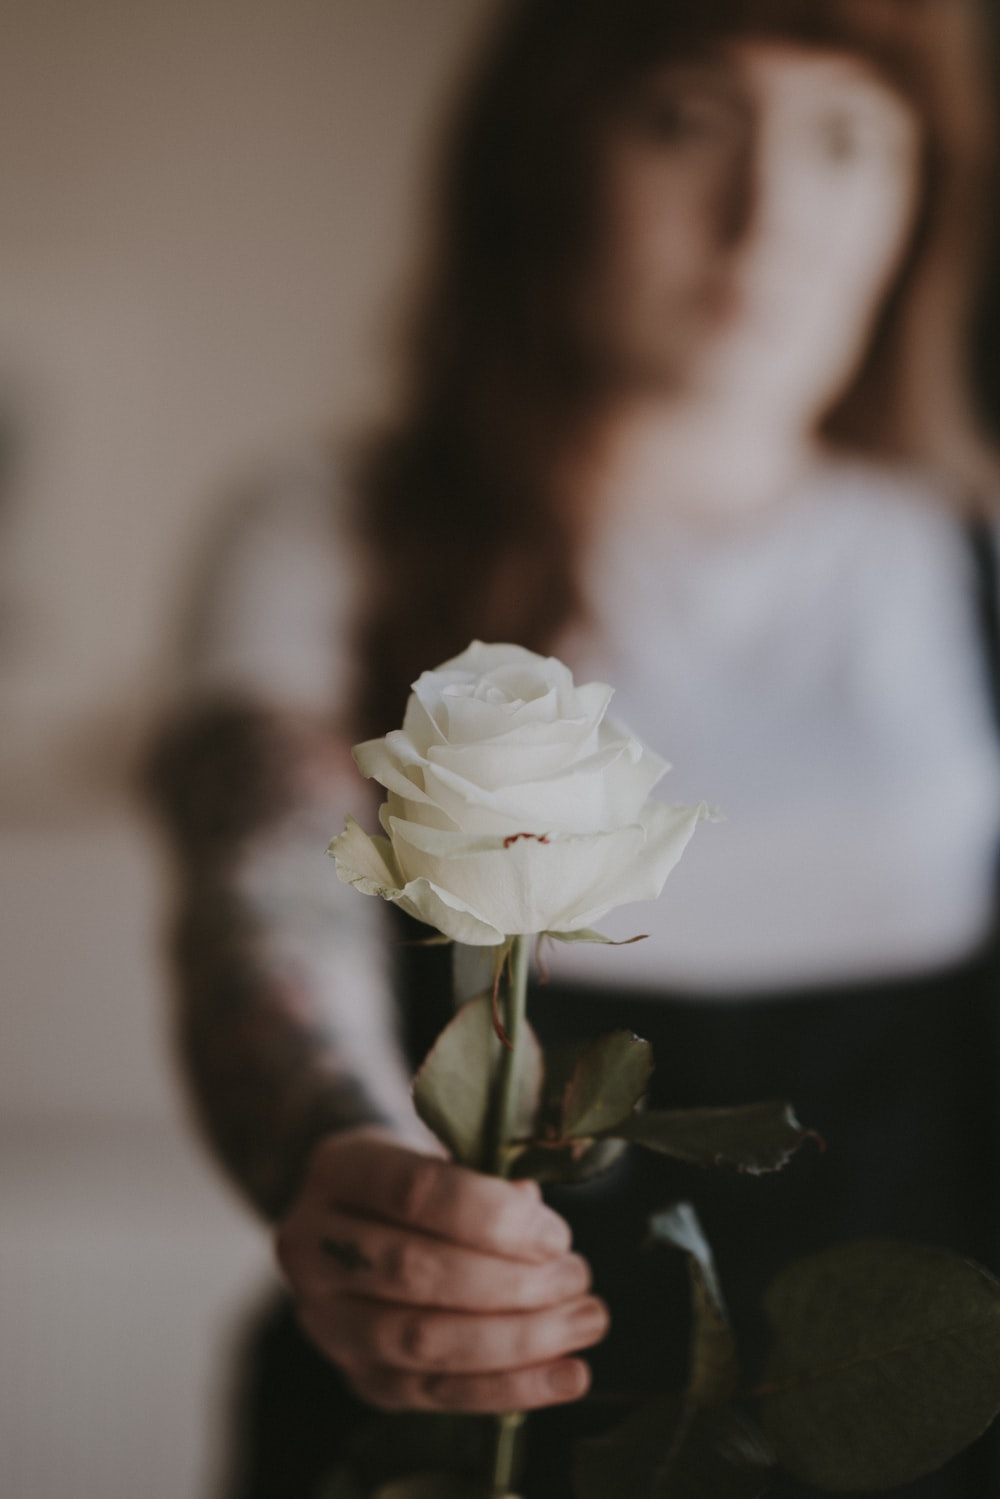 woman holding white rose